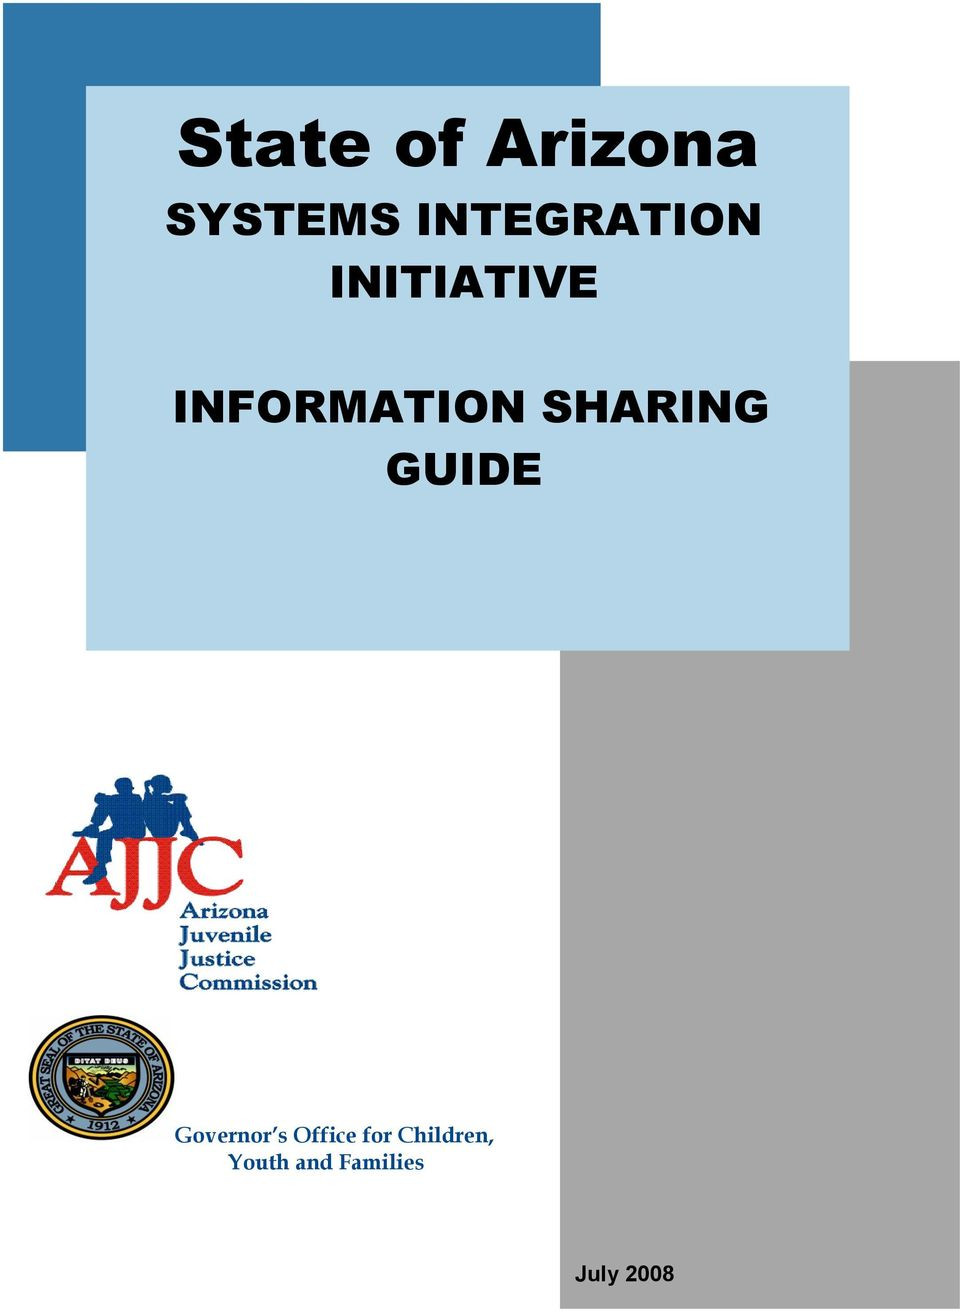 INFORMATION SHARING GUIDE